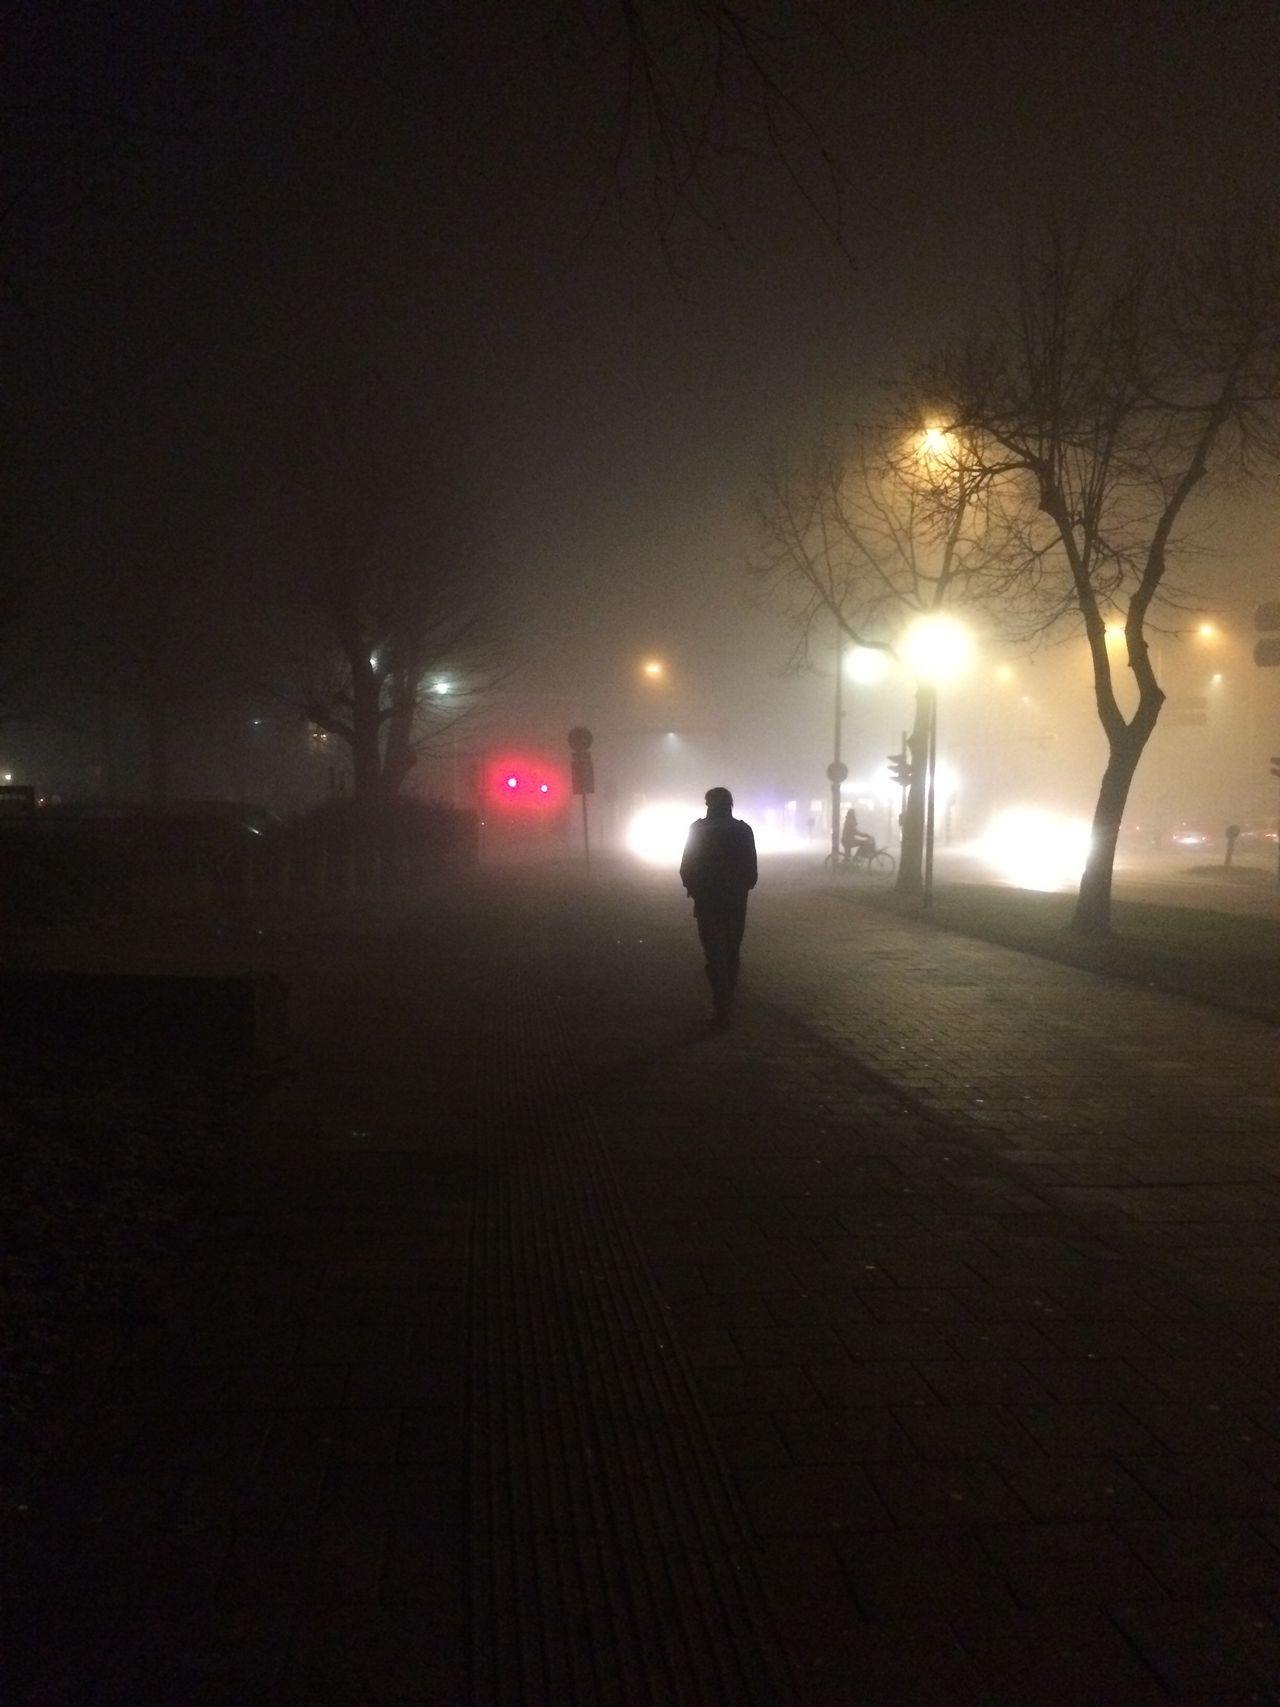 Streetphotography Streetlights Going Home EyeEm Gallery Iphoneonly Nightphotography Fog Light In The Darkness One Person Walking On The Street Silhouette The Street Photographer - 2017 EyeEm Awards